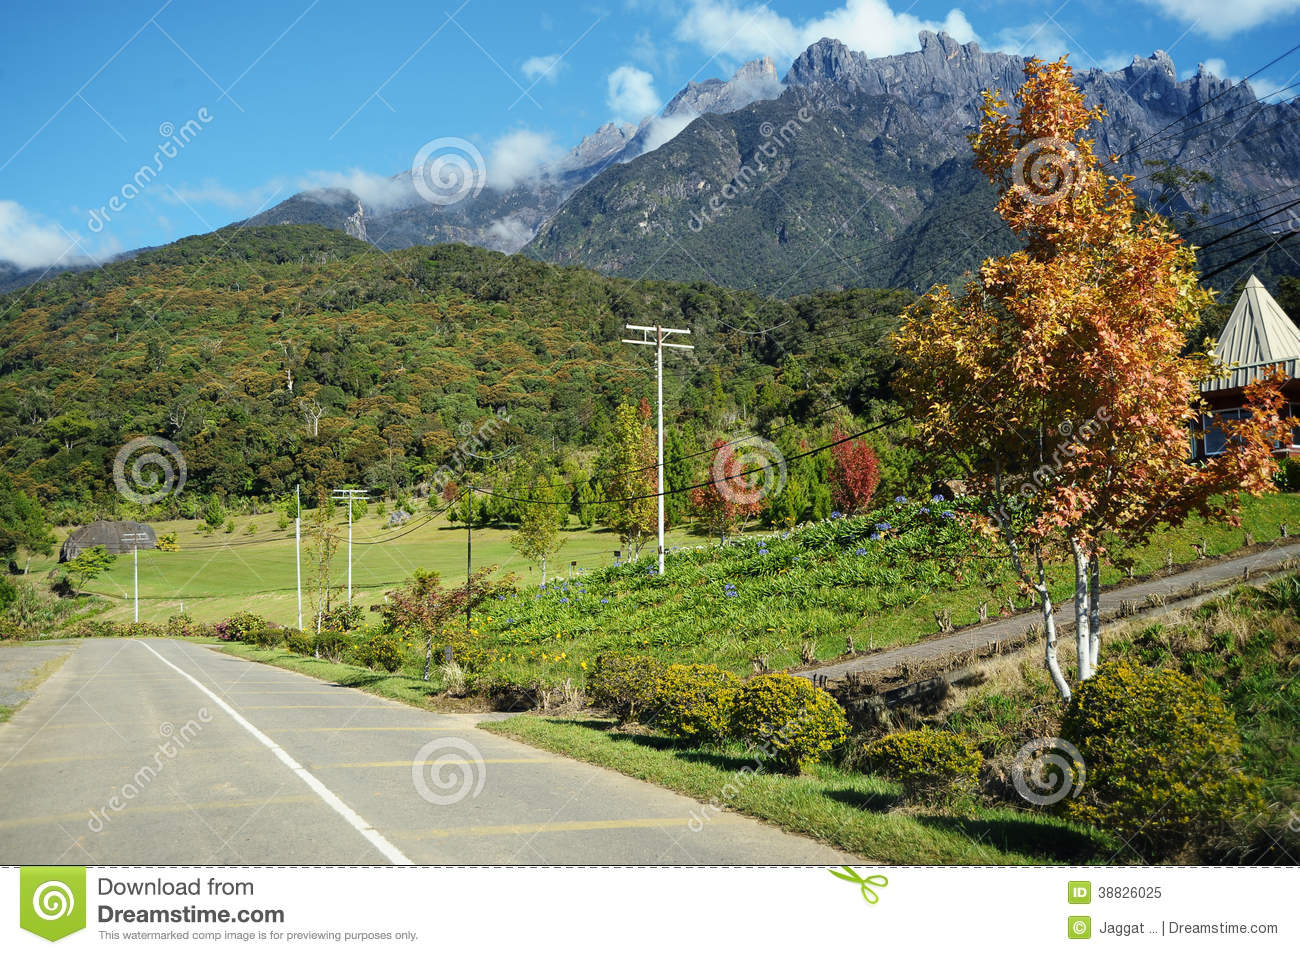 Agriculture valley near Kinabalu Mountain